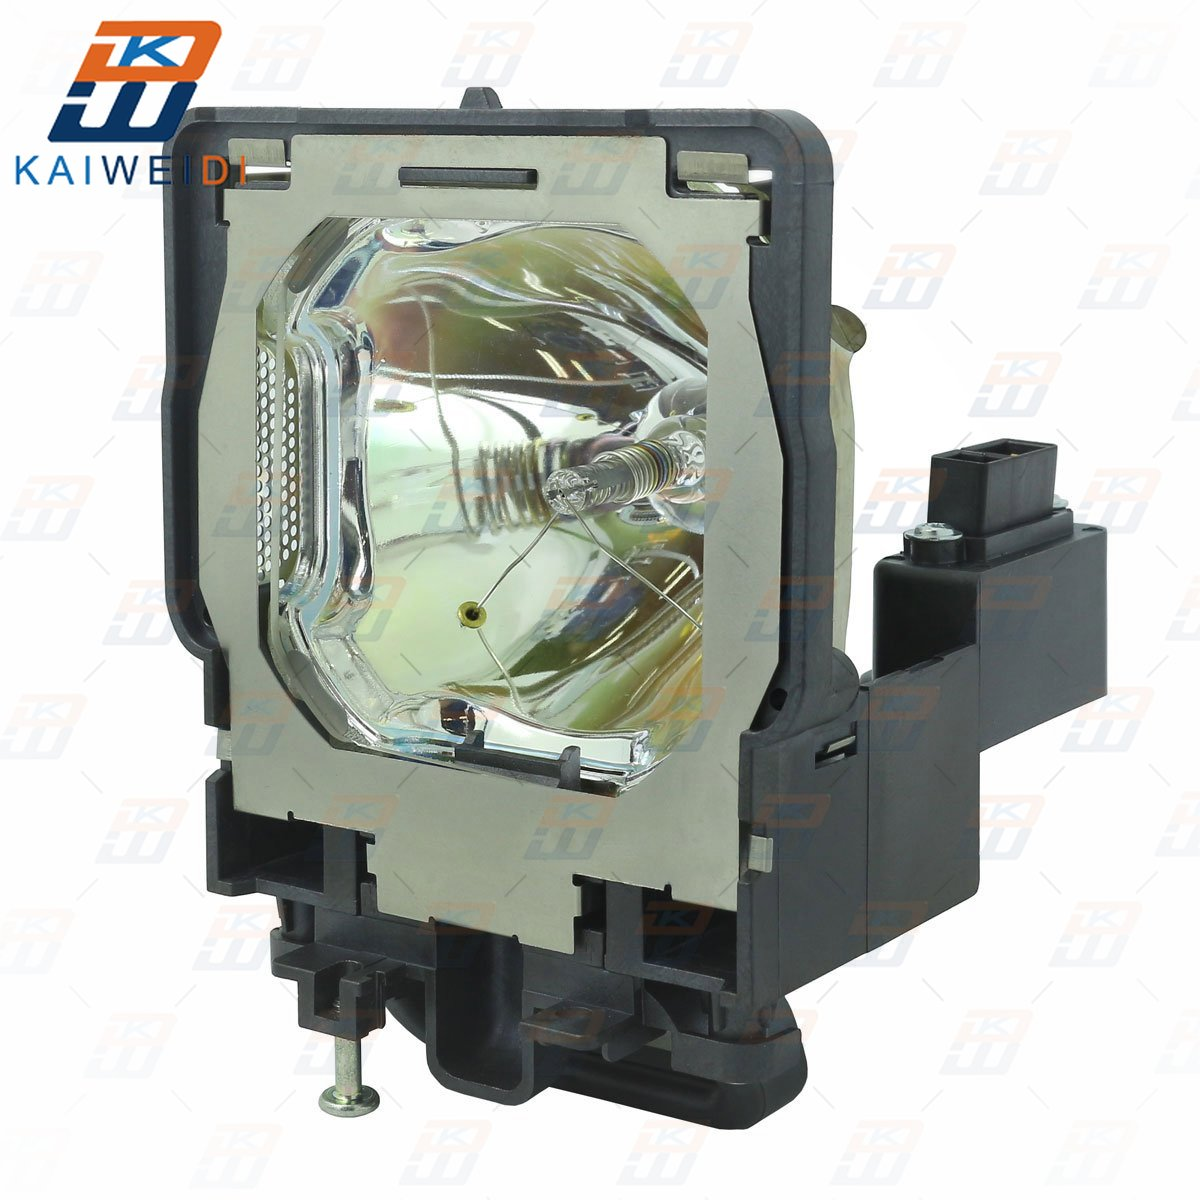 Replacement for Eiki Poa-lmp103 Bare Lamp Only Projector Tv Lamp Bulb by Technical Precision